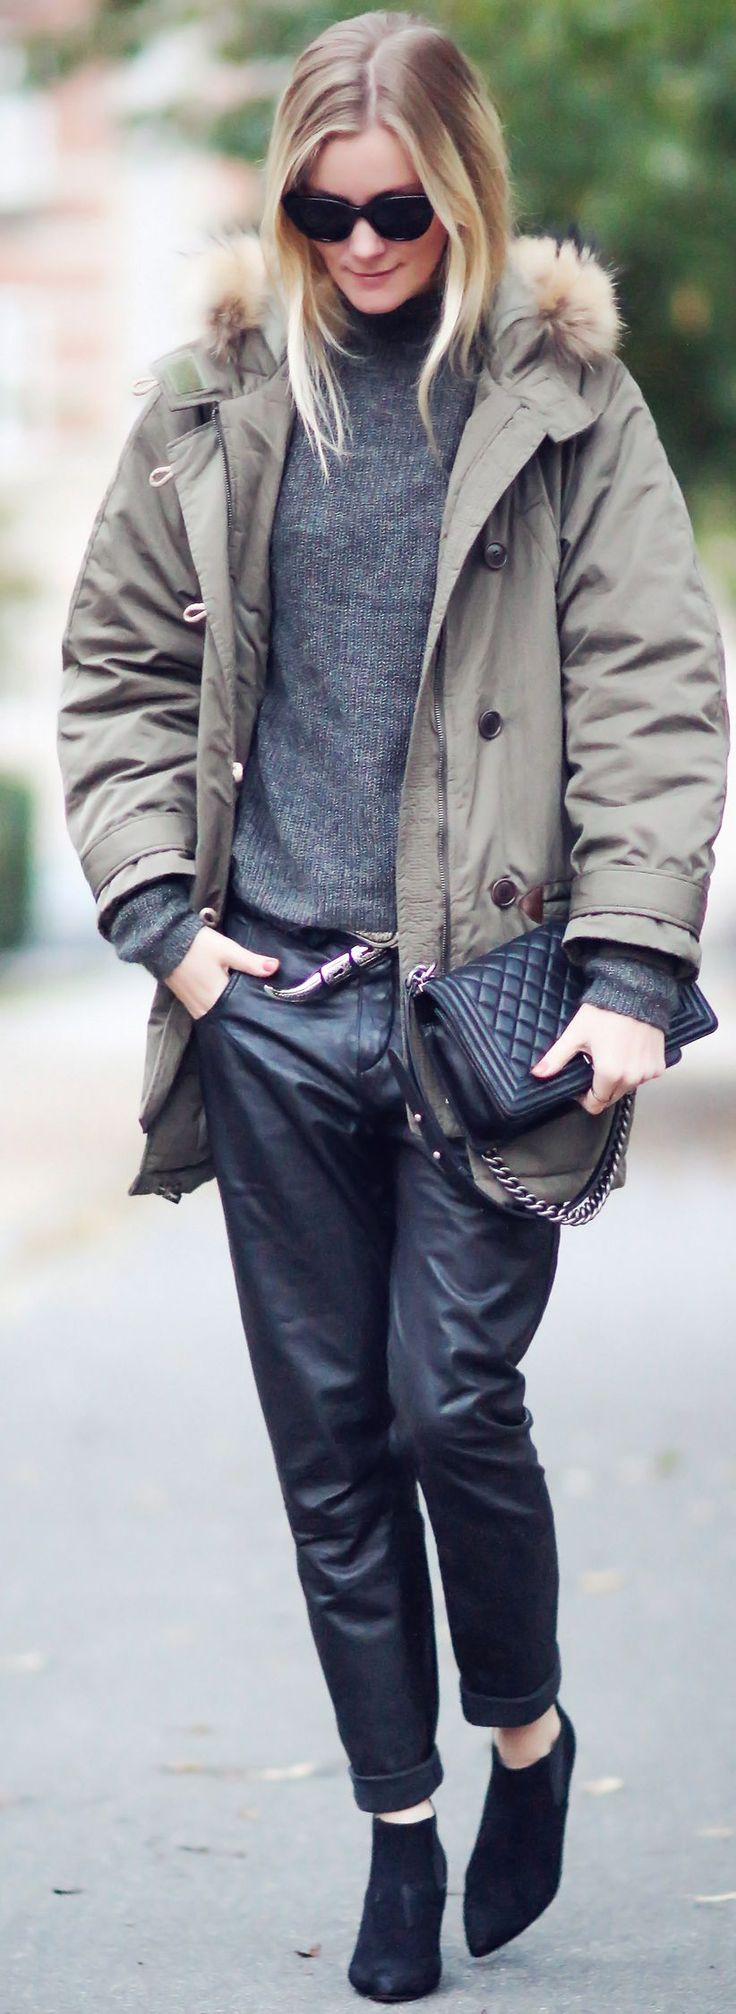 Fall Style Inspiration - khaki + grey + black leather.